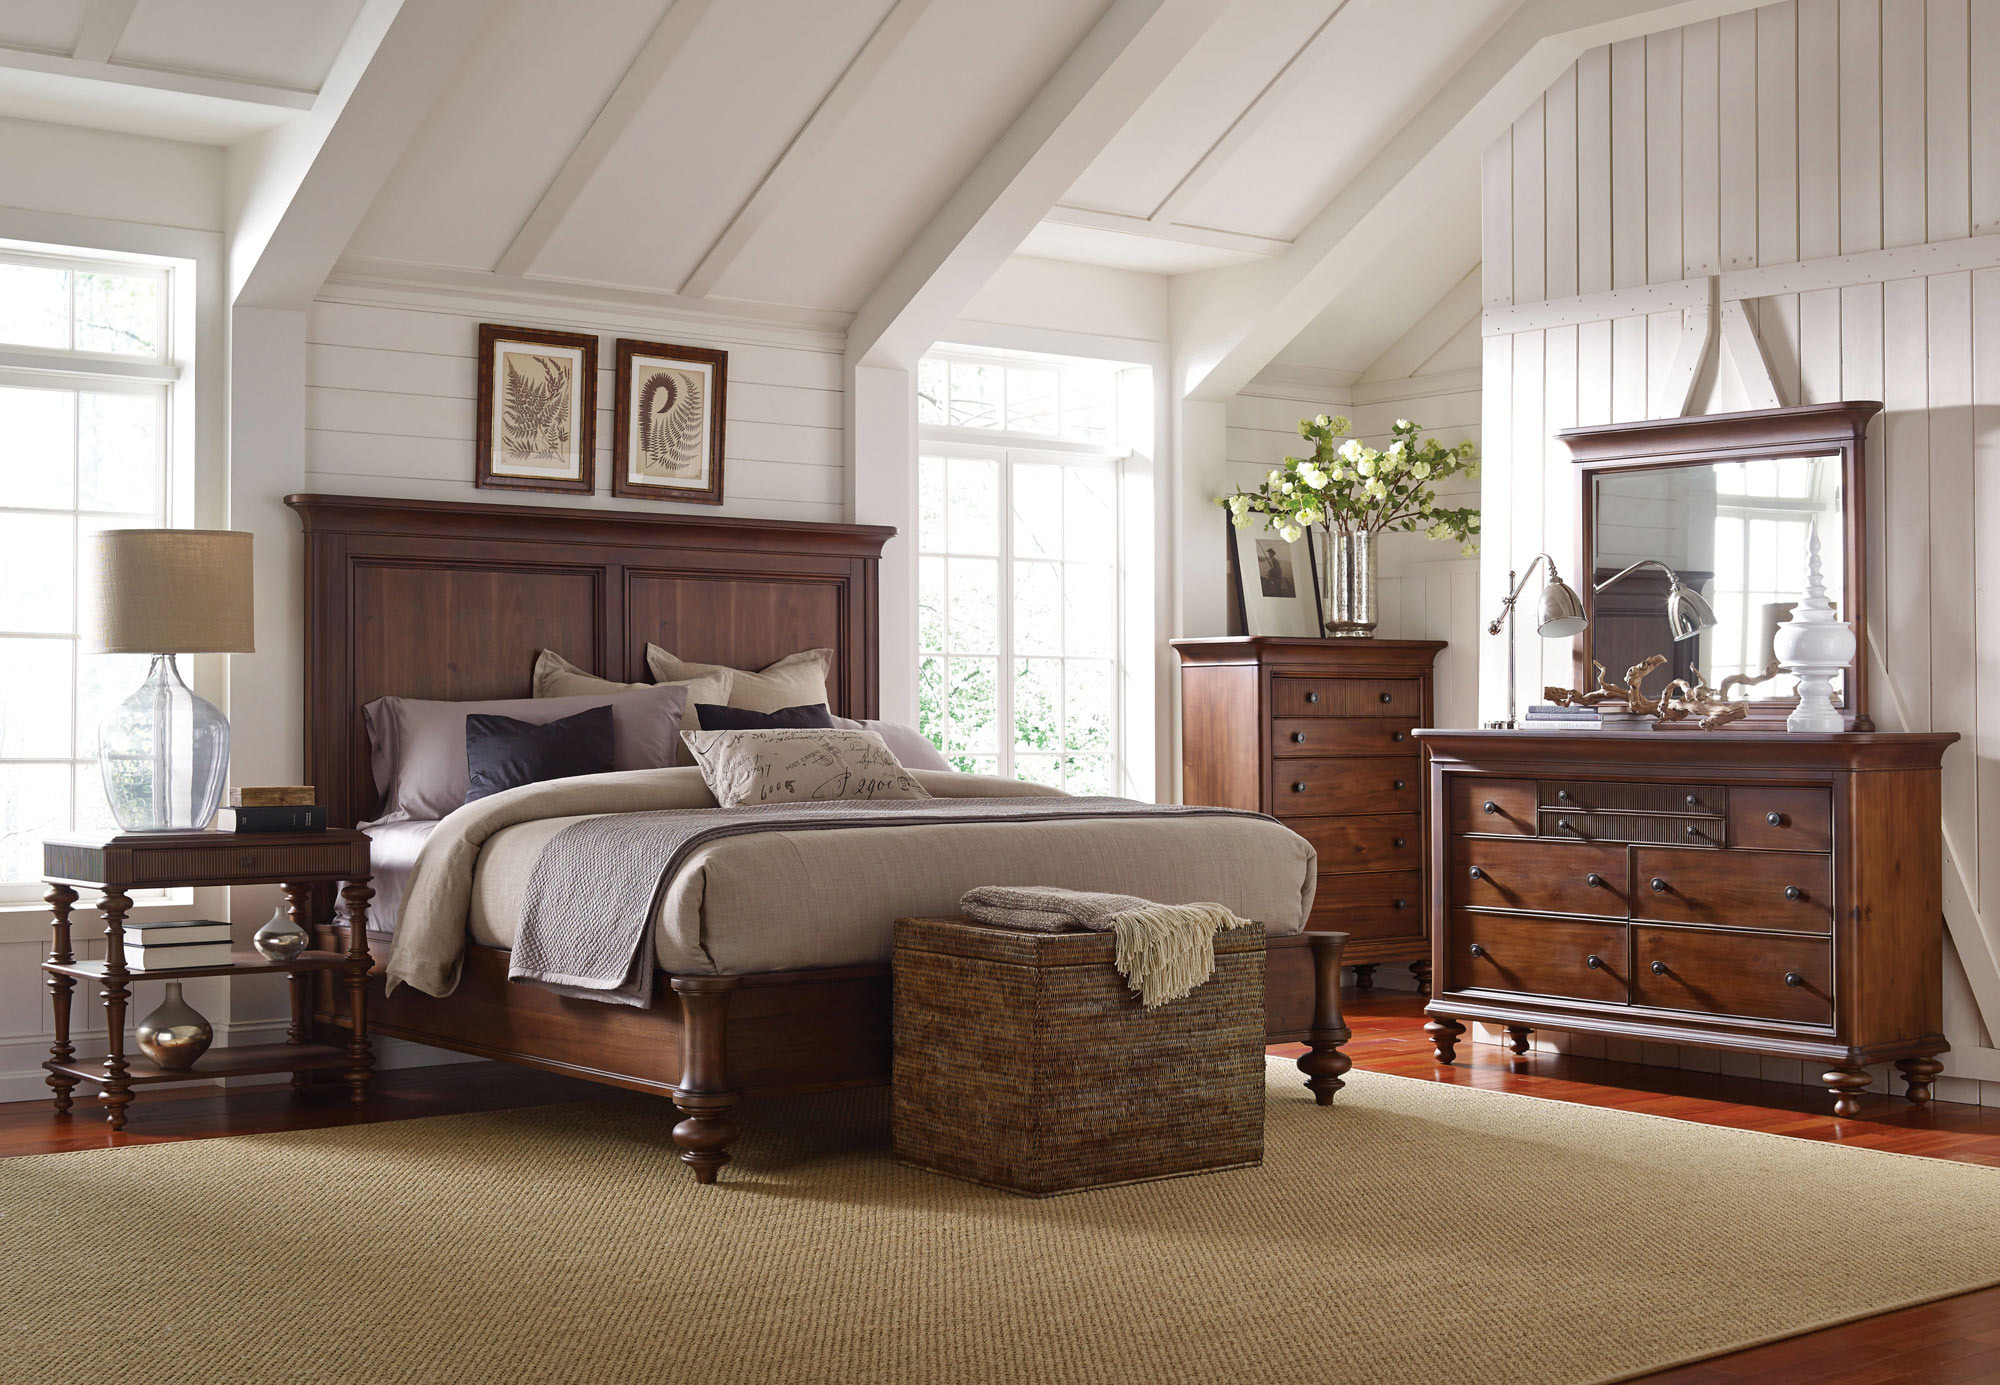 Bedroom Furniture Trinidad On The Building Source